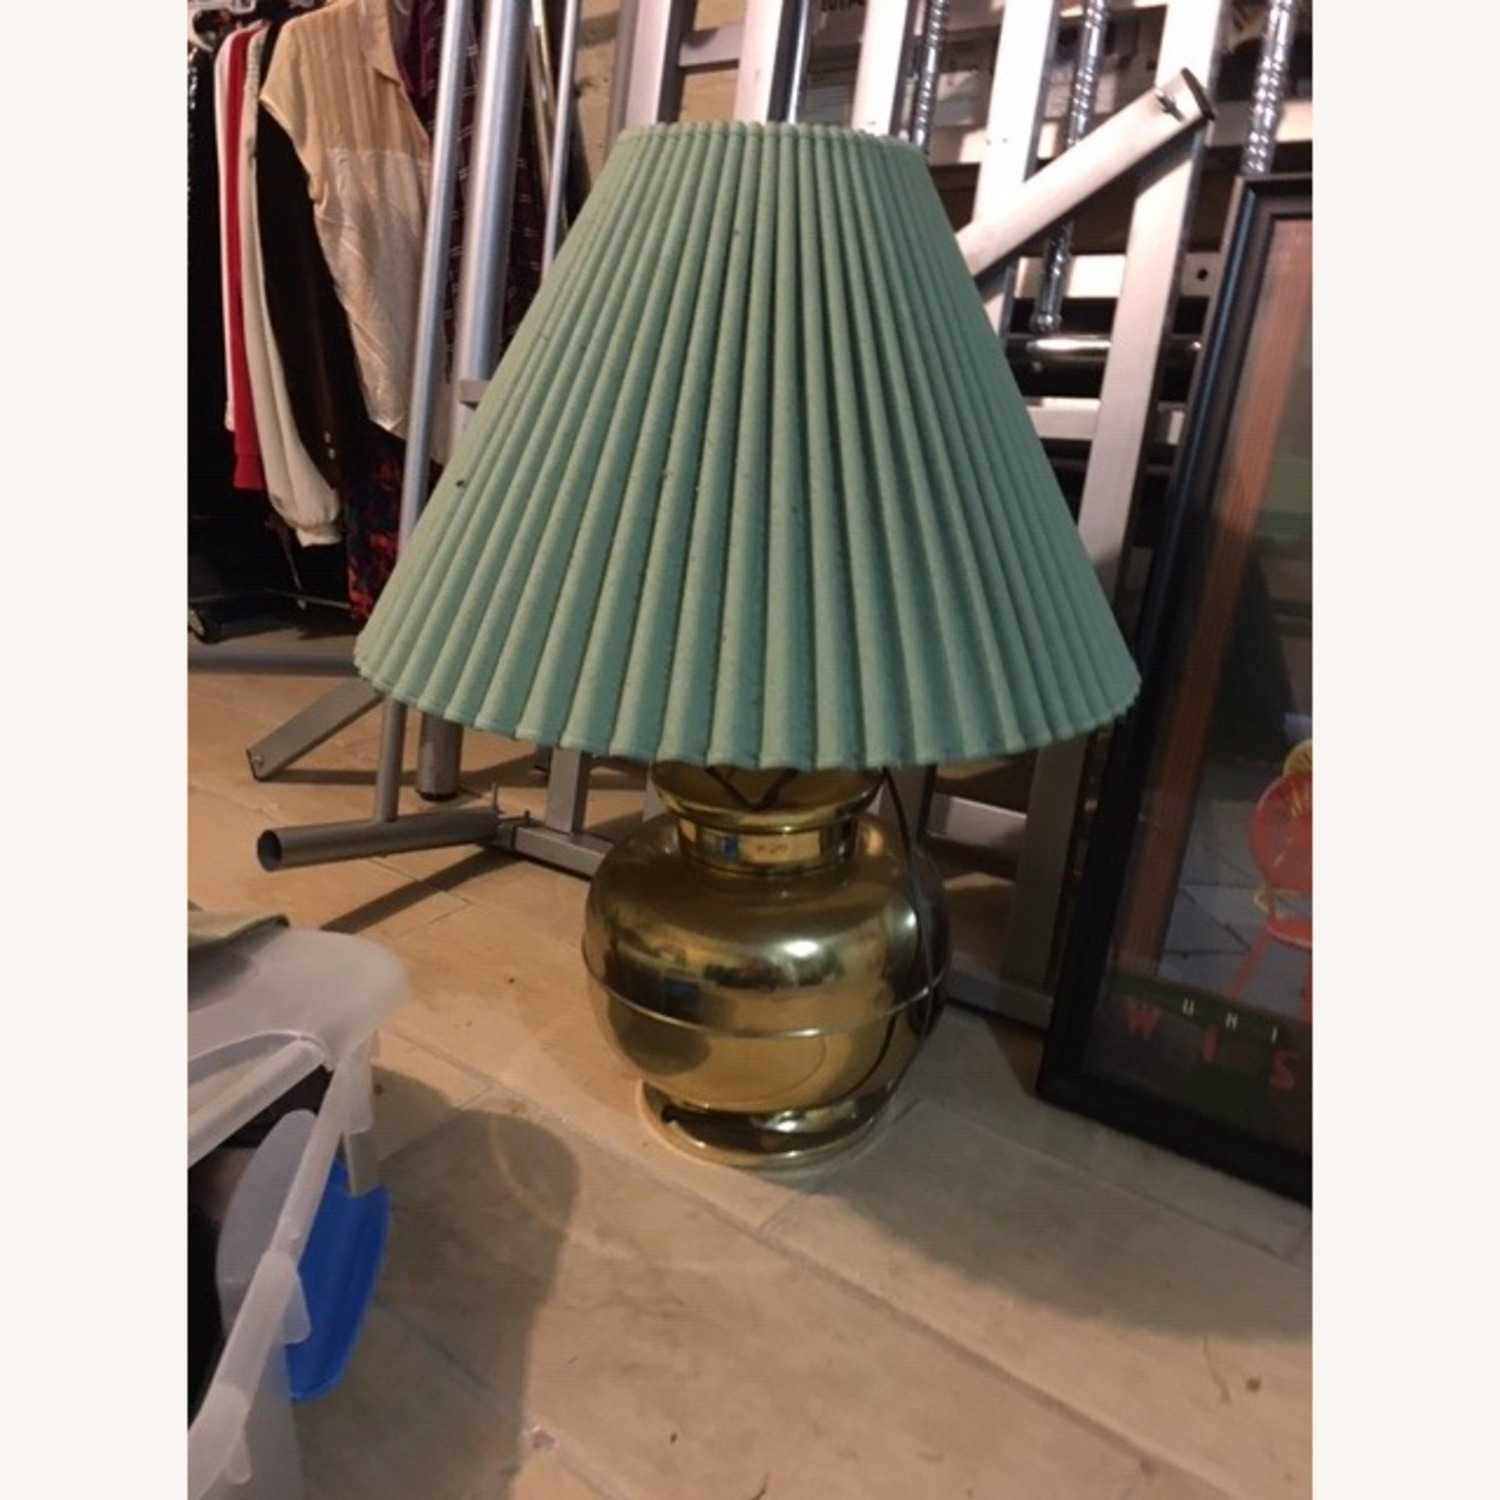 Anthropologie Vintage Table Lamp - image-1